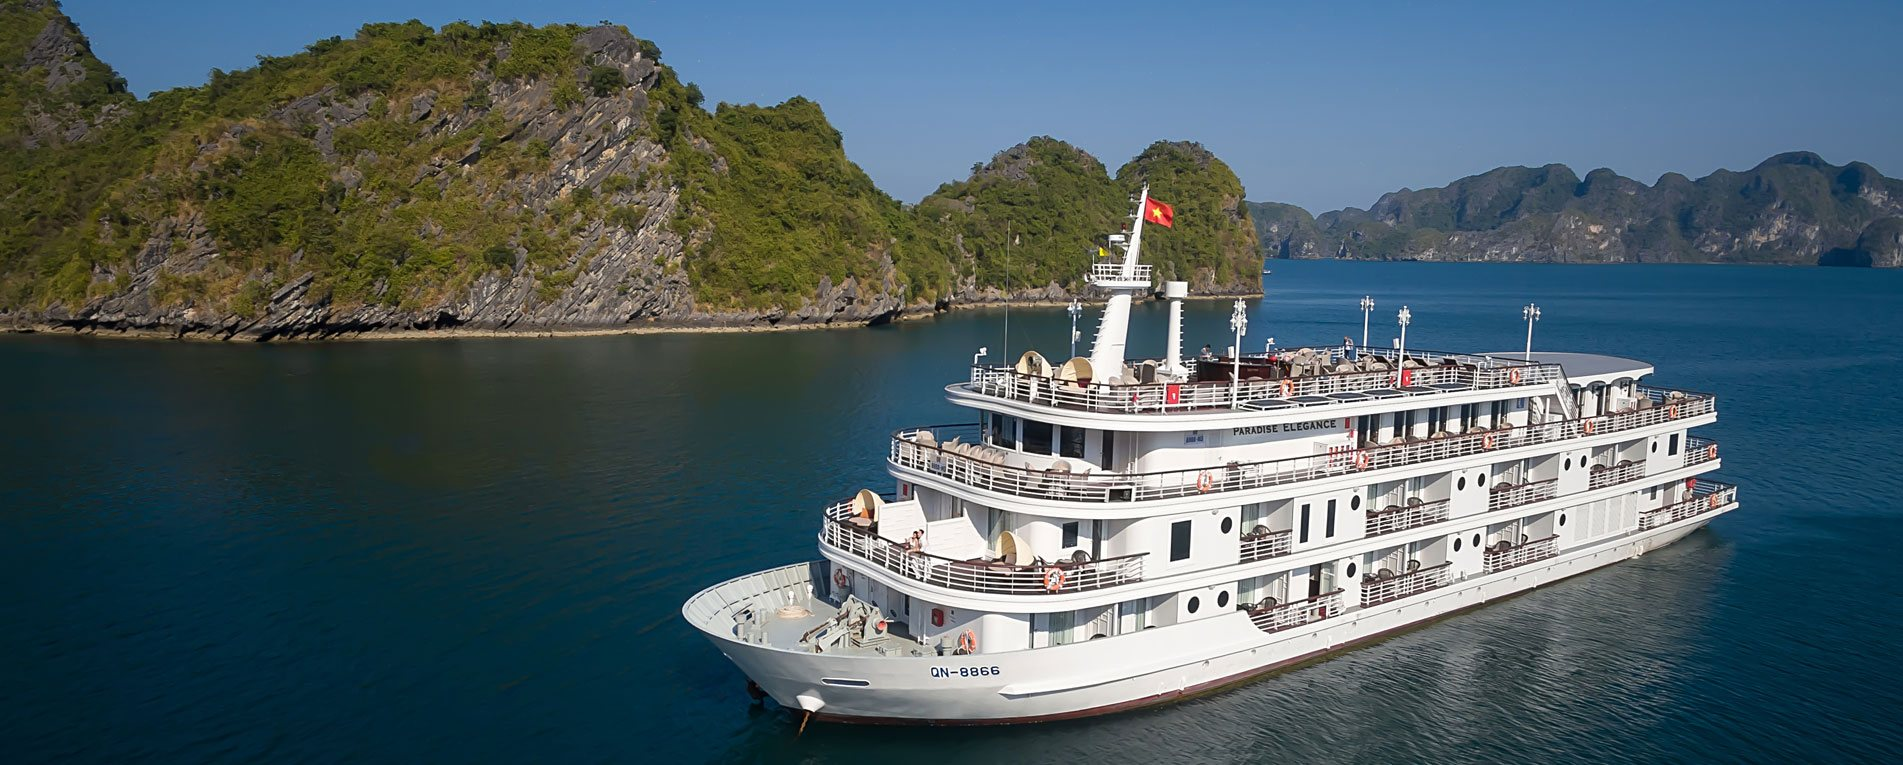 3 DAY 2 NIGHT CRUISE ITINERARY ABOARD PARADISE LUXURY HALONG BAY (2nights on boat)